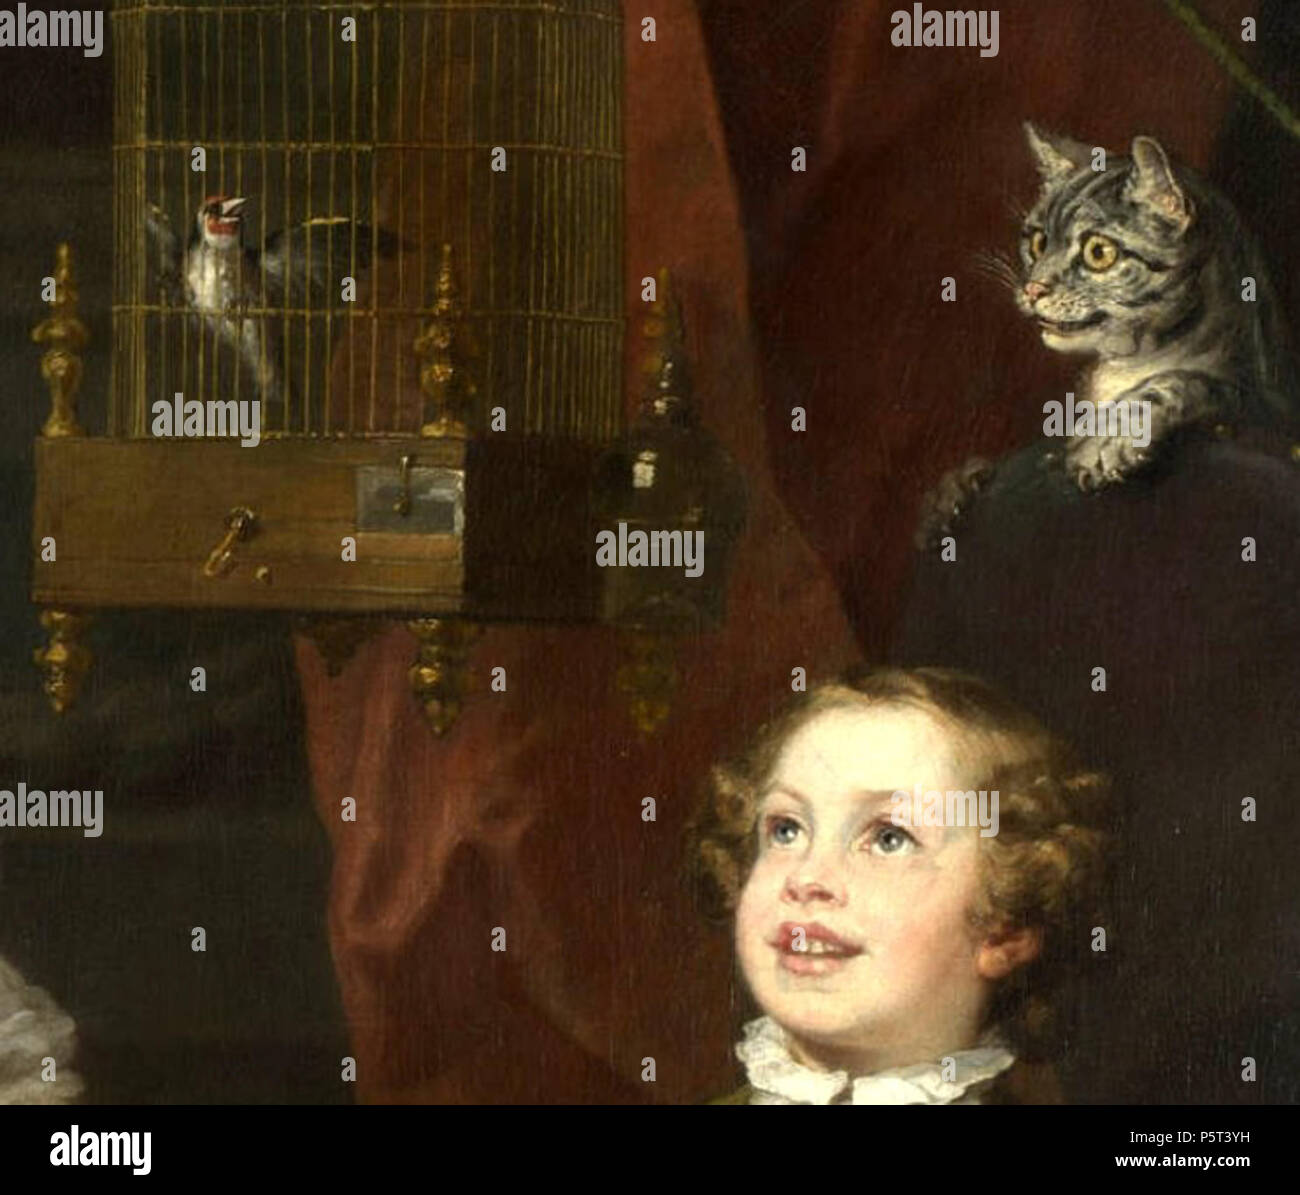 n  a  anglais   chat et l u0026 39 oiseau  l u0026 39 enfant  graham hogarth    1742  william hogarth  1697